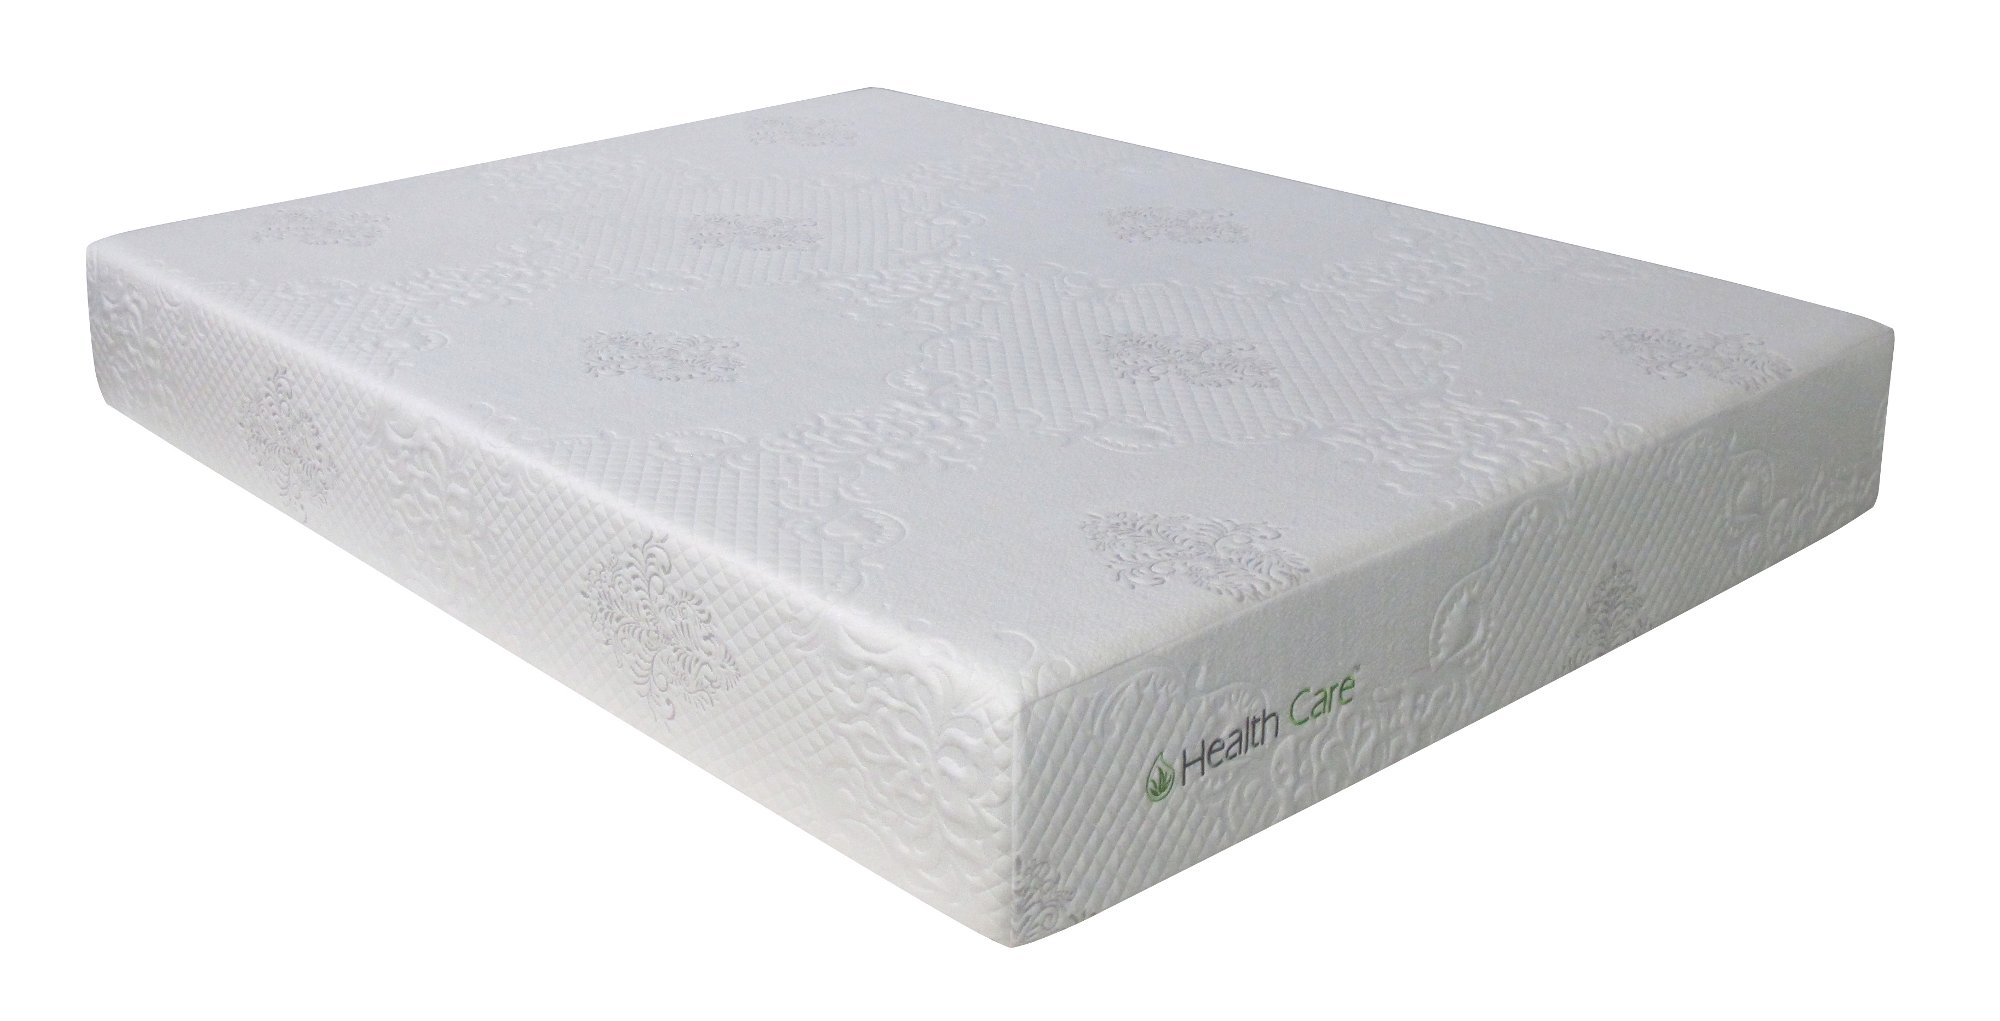 10 comfort gel full mattress with foldable base rc willey furniture store Full size memory foam mattress